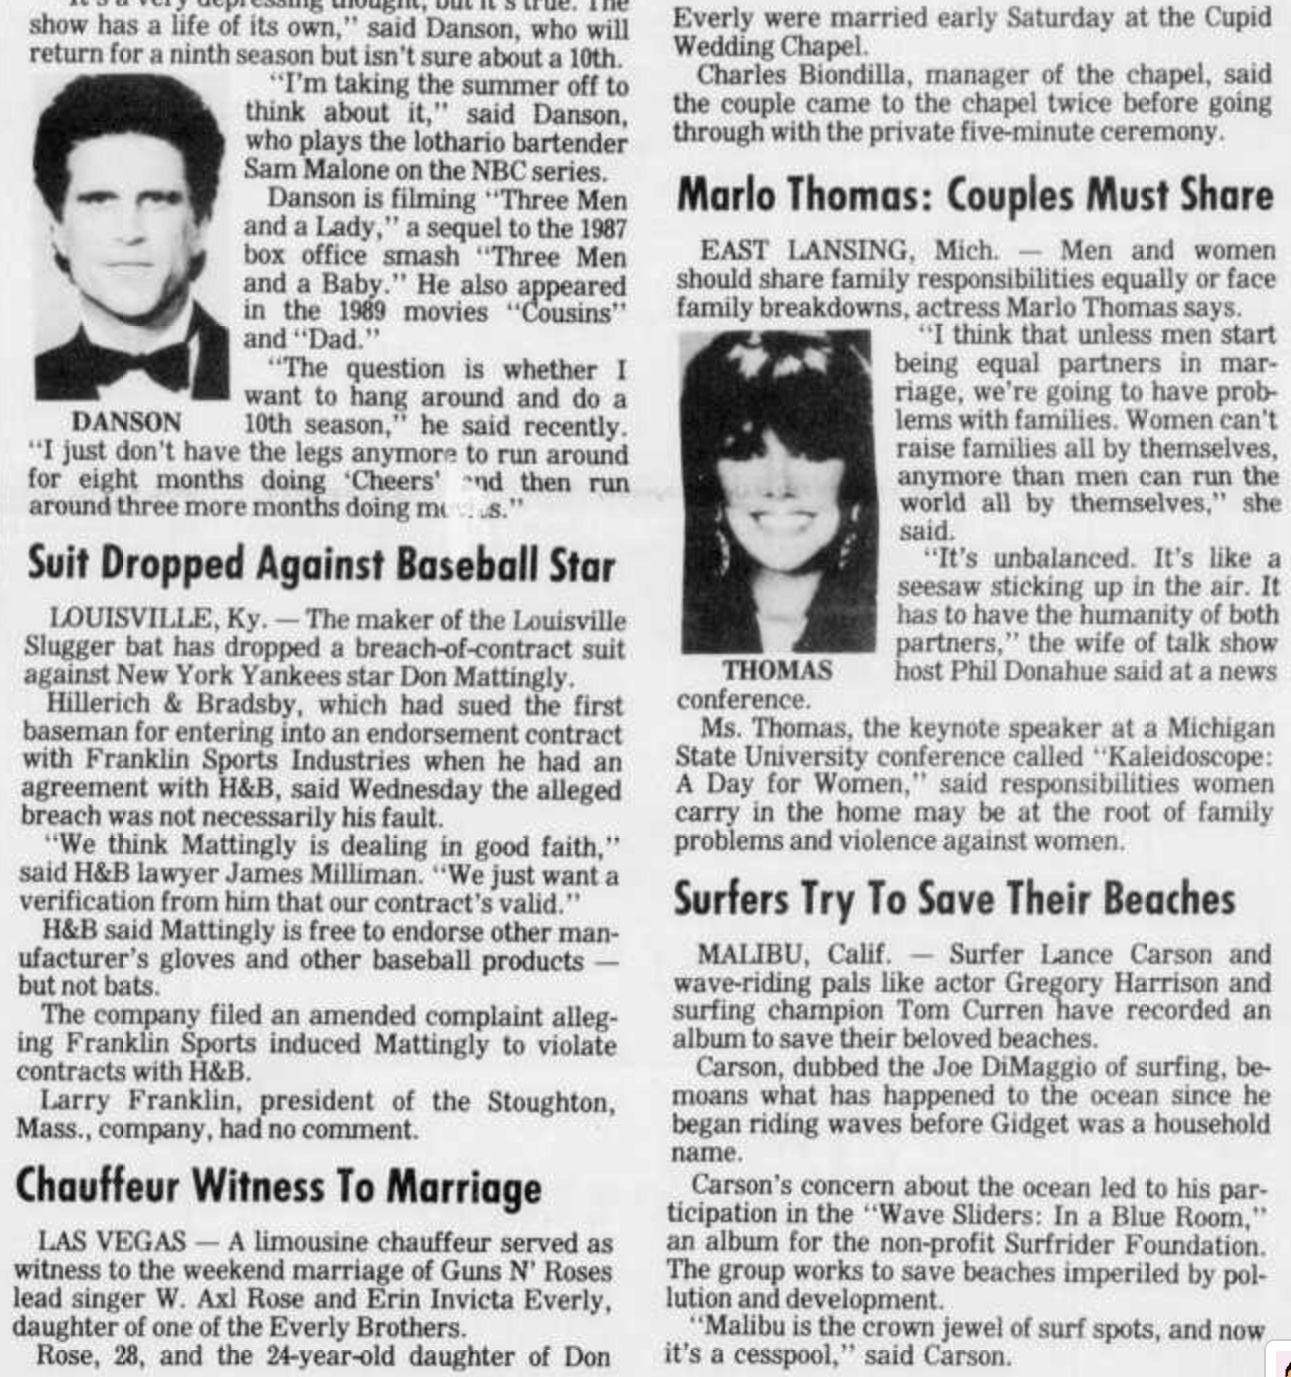 1990.05.03 - Aiken Standard - Chauffeur Witness to Marriage (Axl) Aiken_10